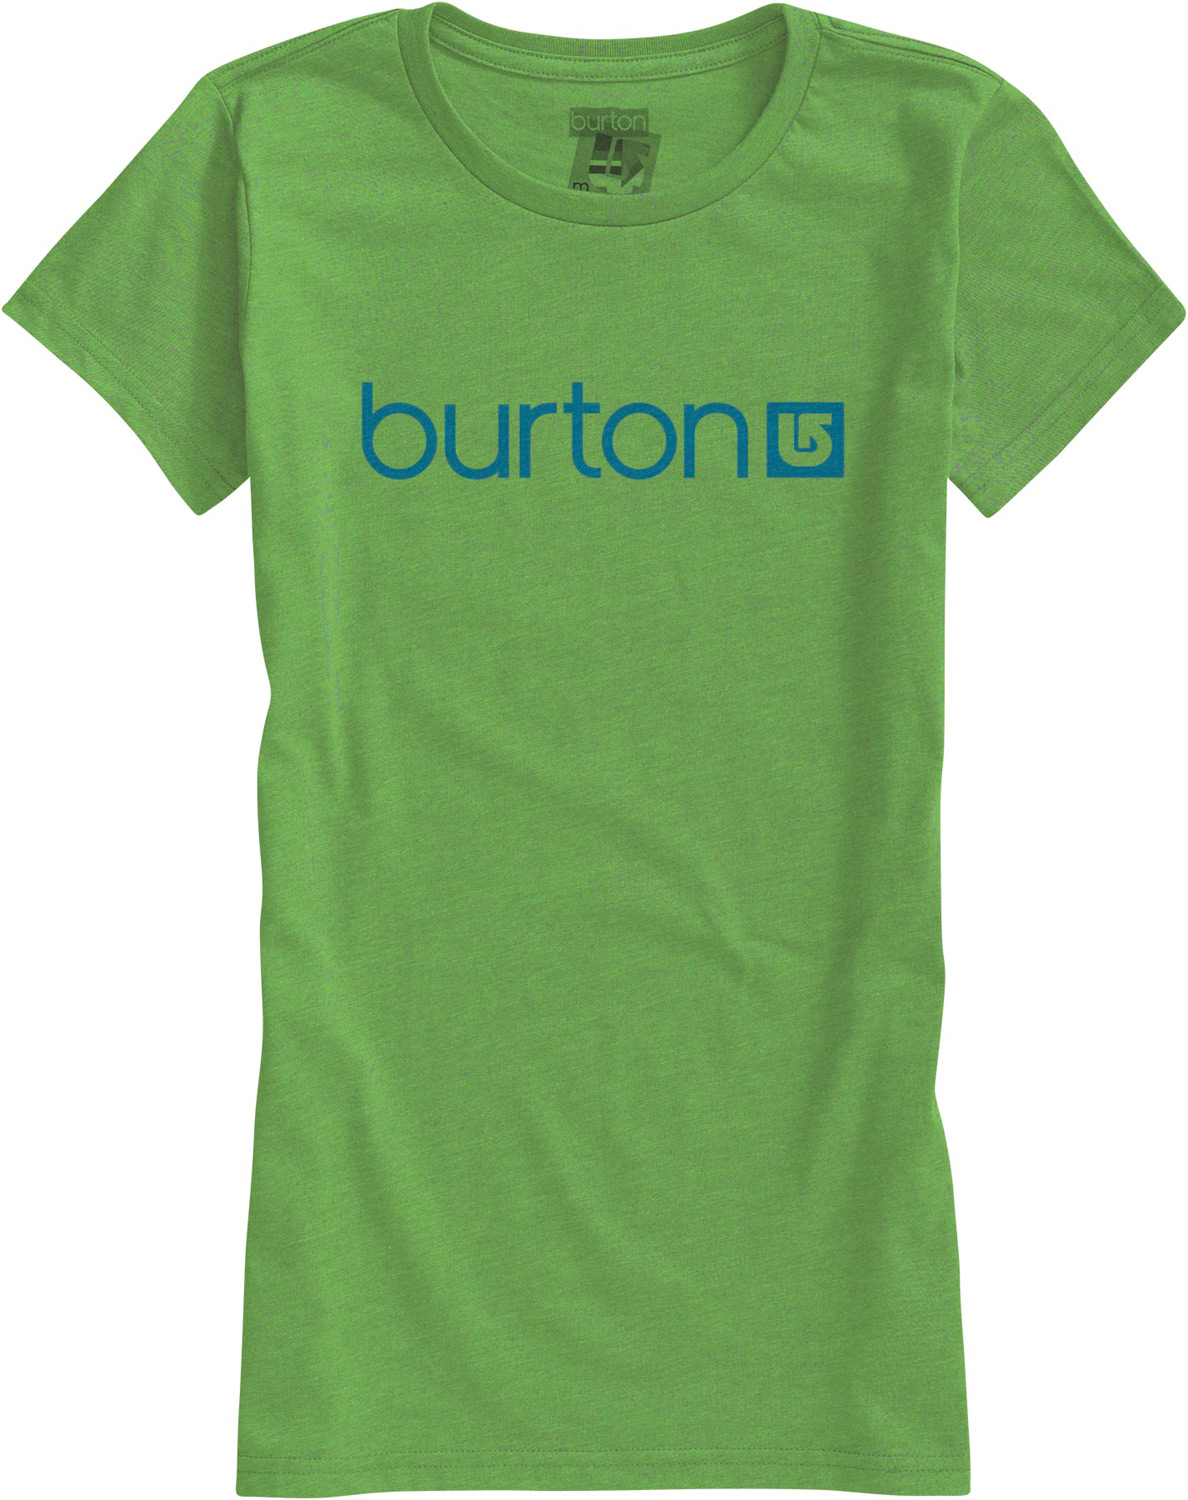 Snowboard Key Features of The Burton Her Logo T-Shirt: Regular Fit Crew Neck Short Sleeve 100% Cotton Silicone Fabric Treatment Screen Print on Front - $14.95